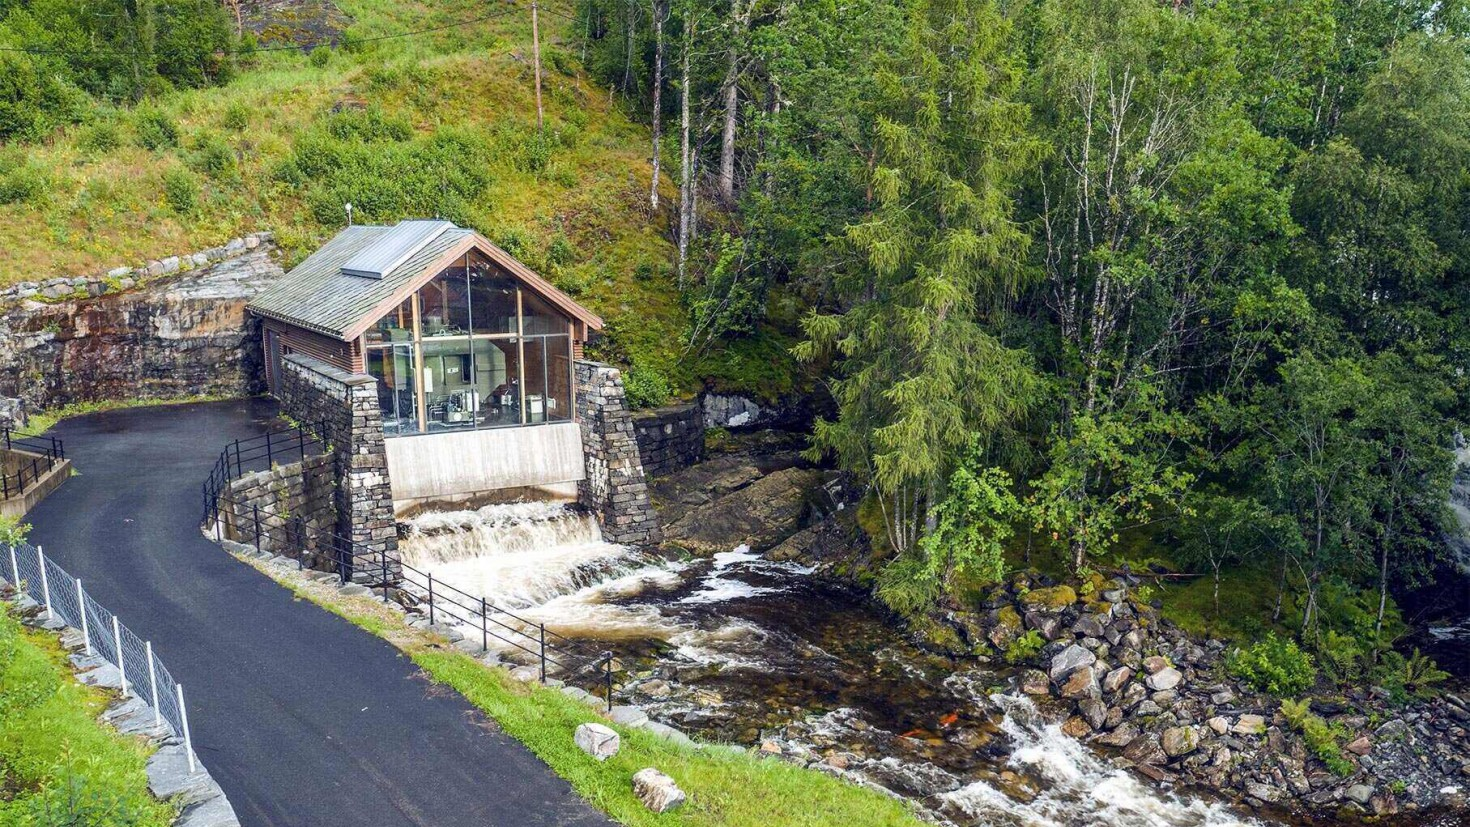 An example of a small-scale hydropower plant: The Alsaker power plant in kvinnherad municipality in Western Norway. Photo by småkraft as.